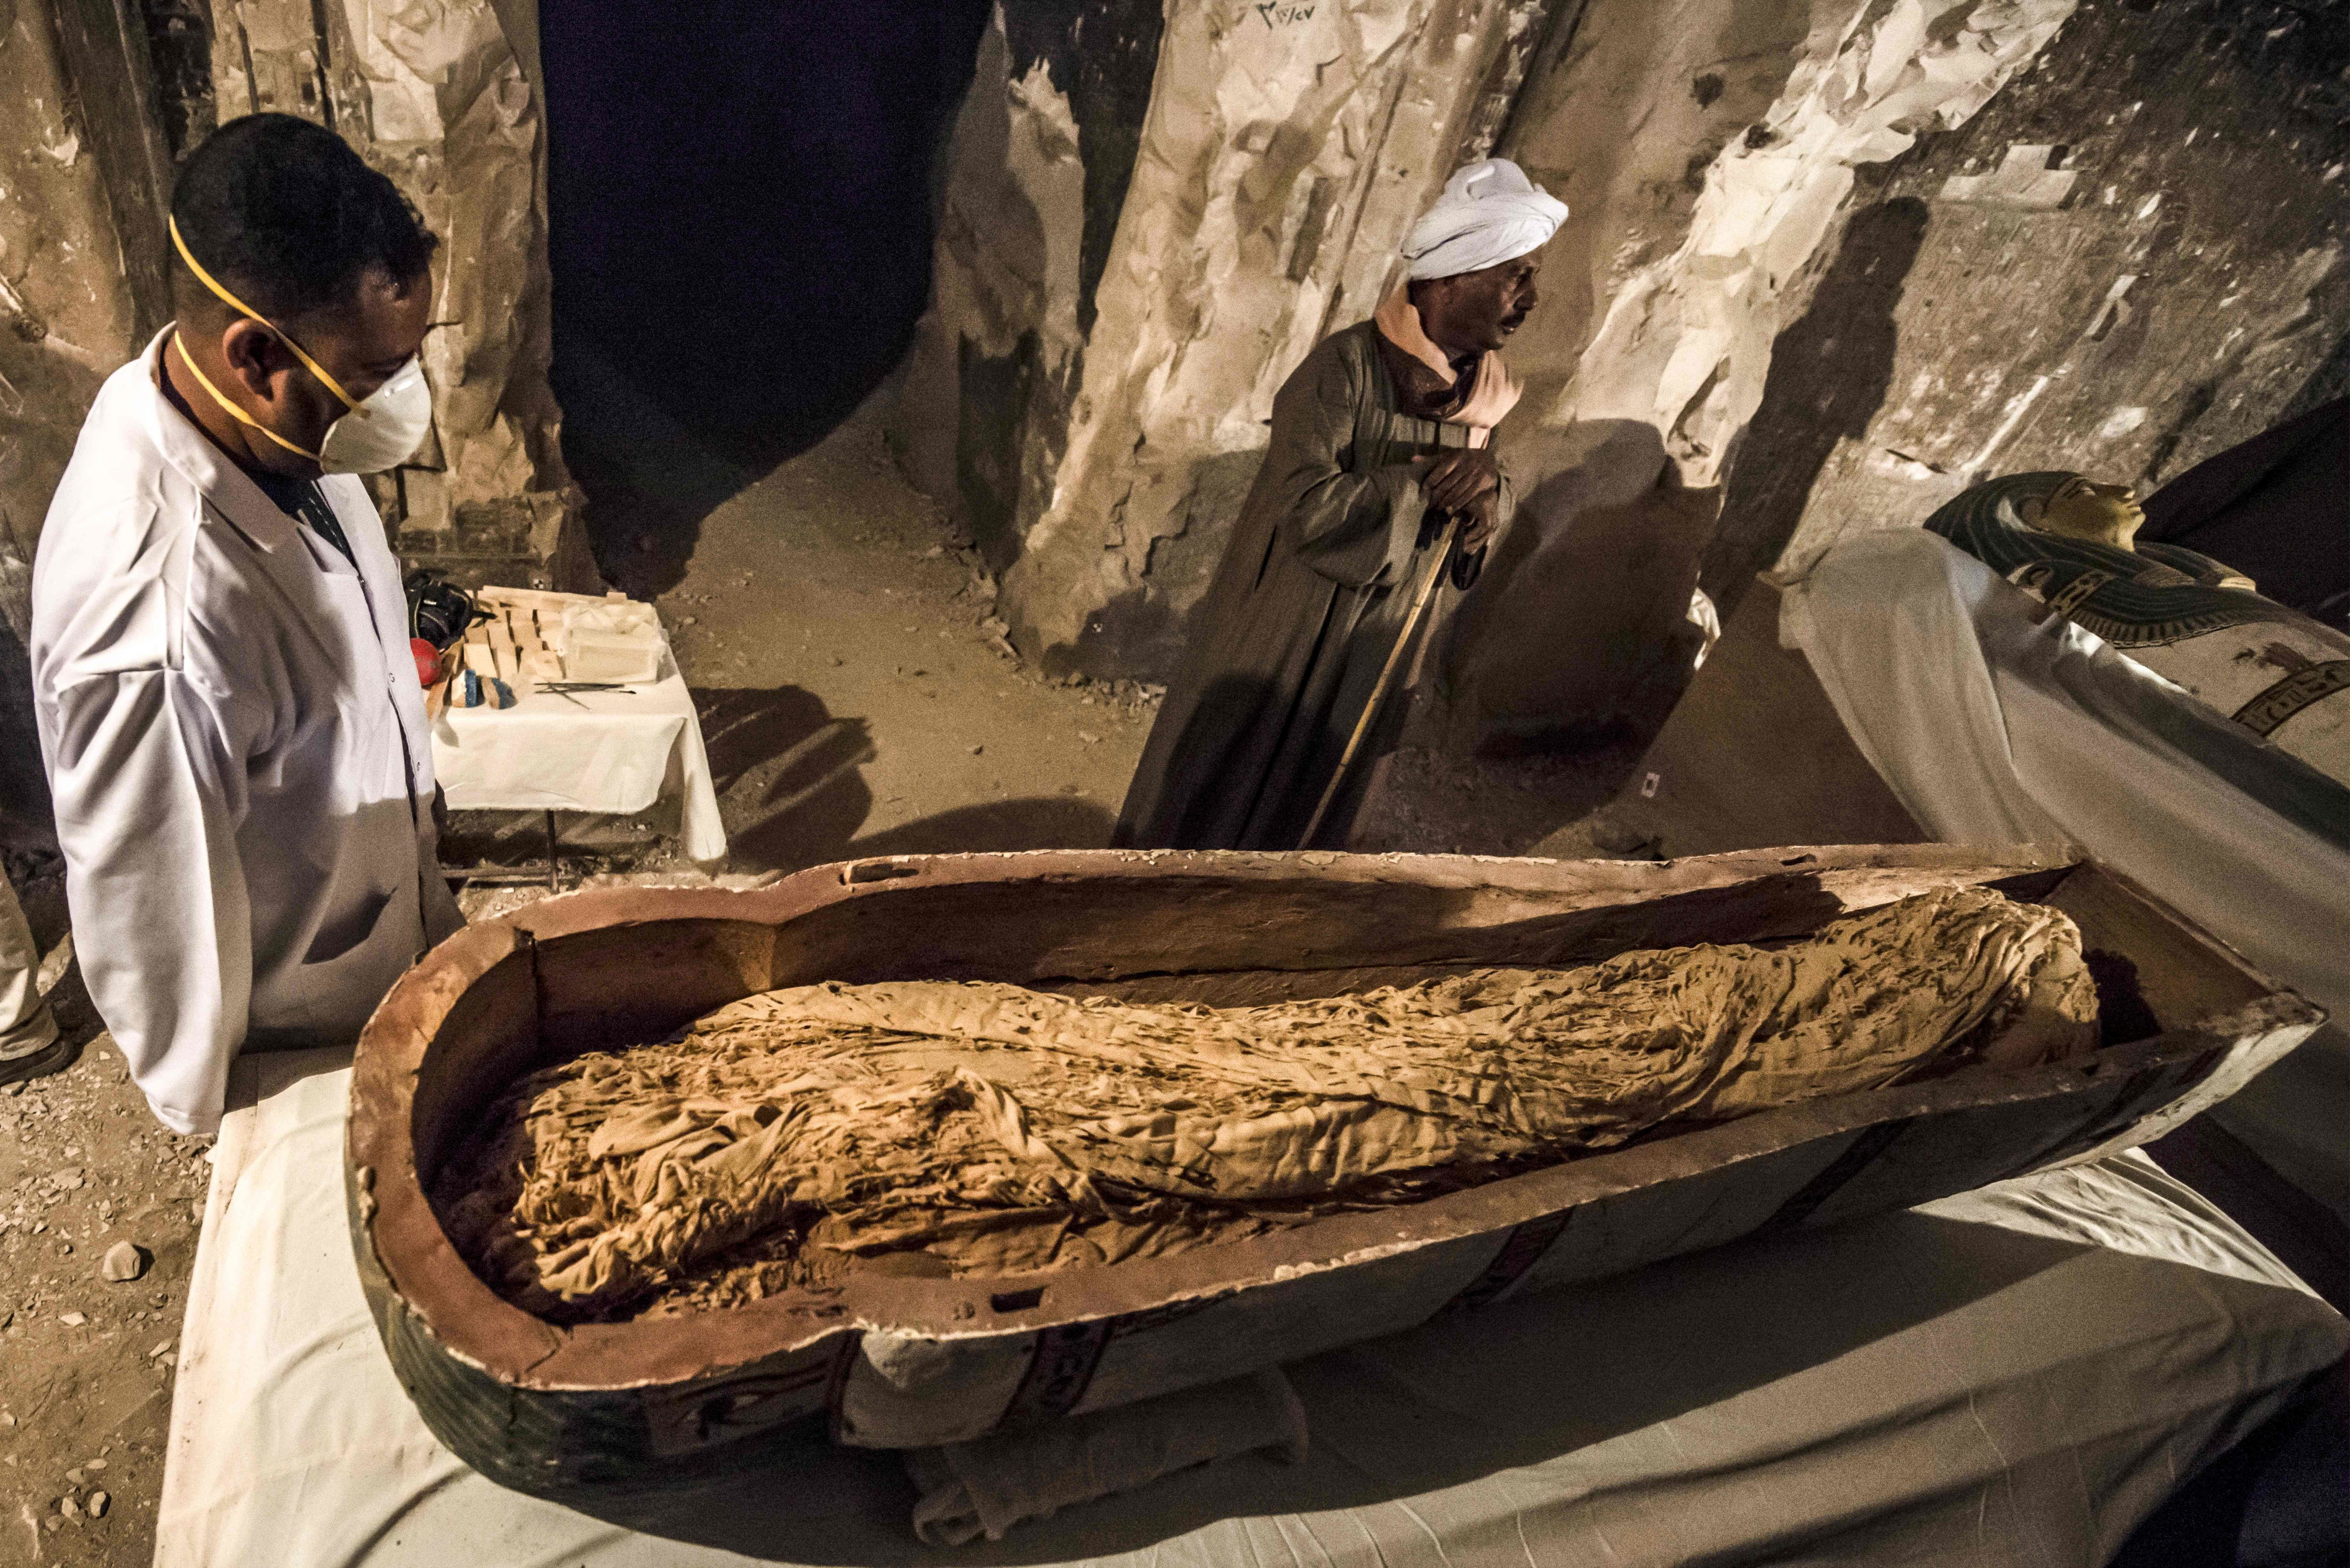 3,000-Year-Old Mummy Revealed As Egyptian Officials Open